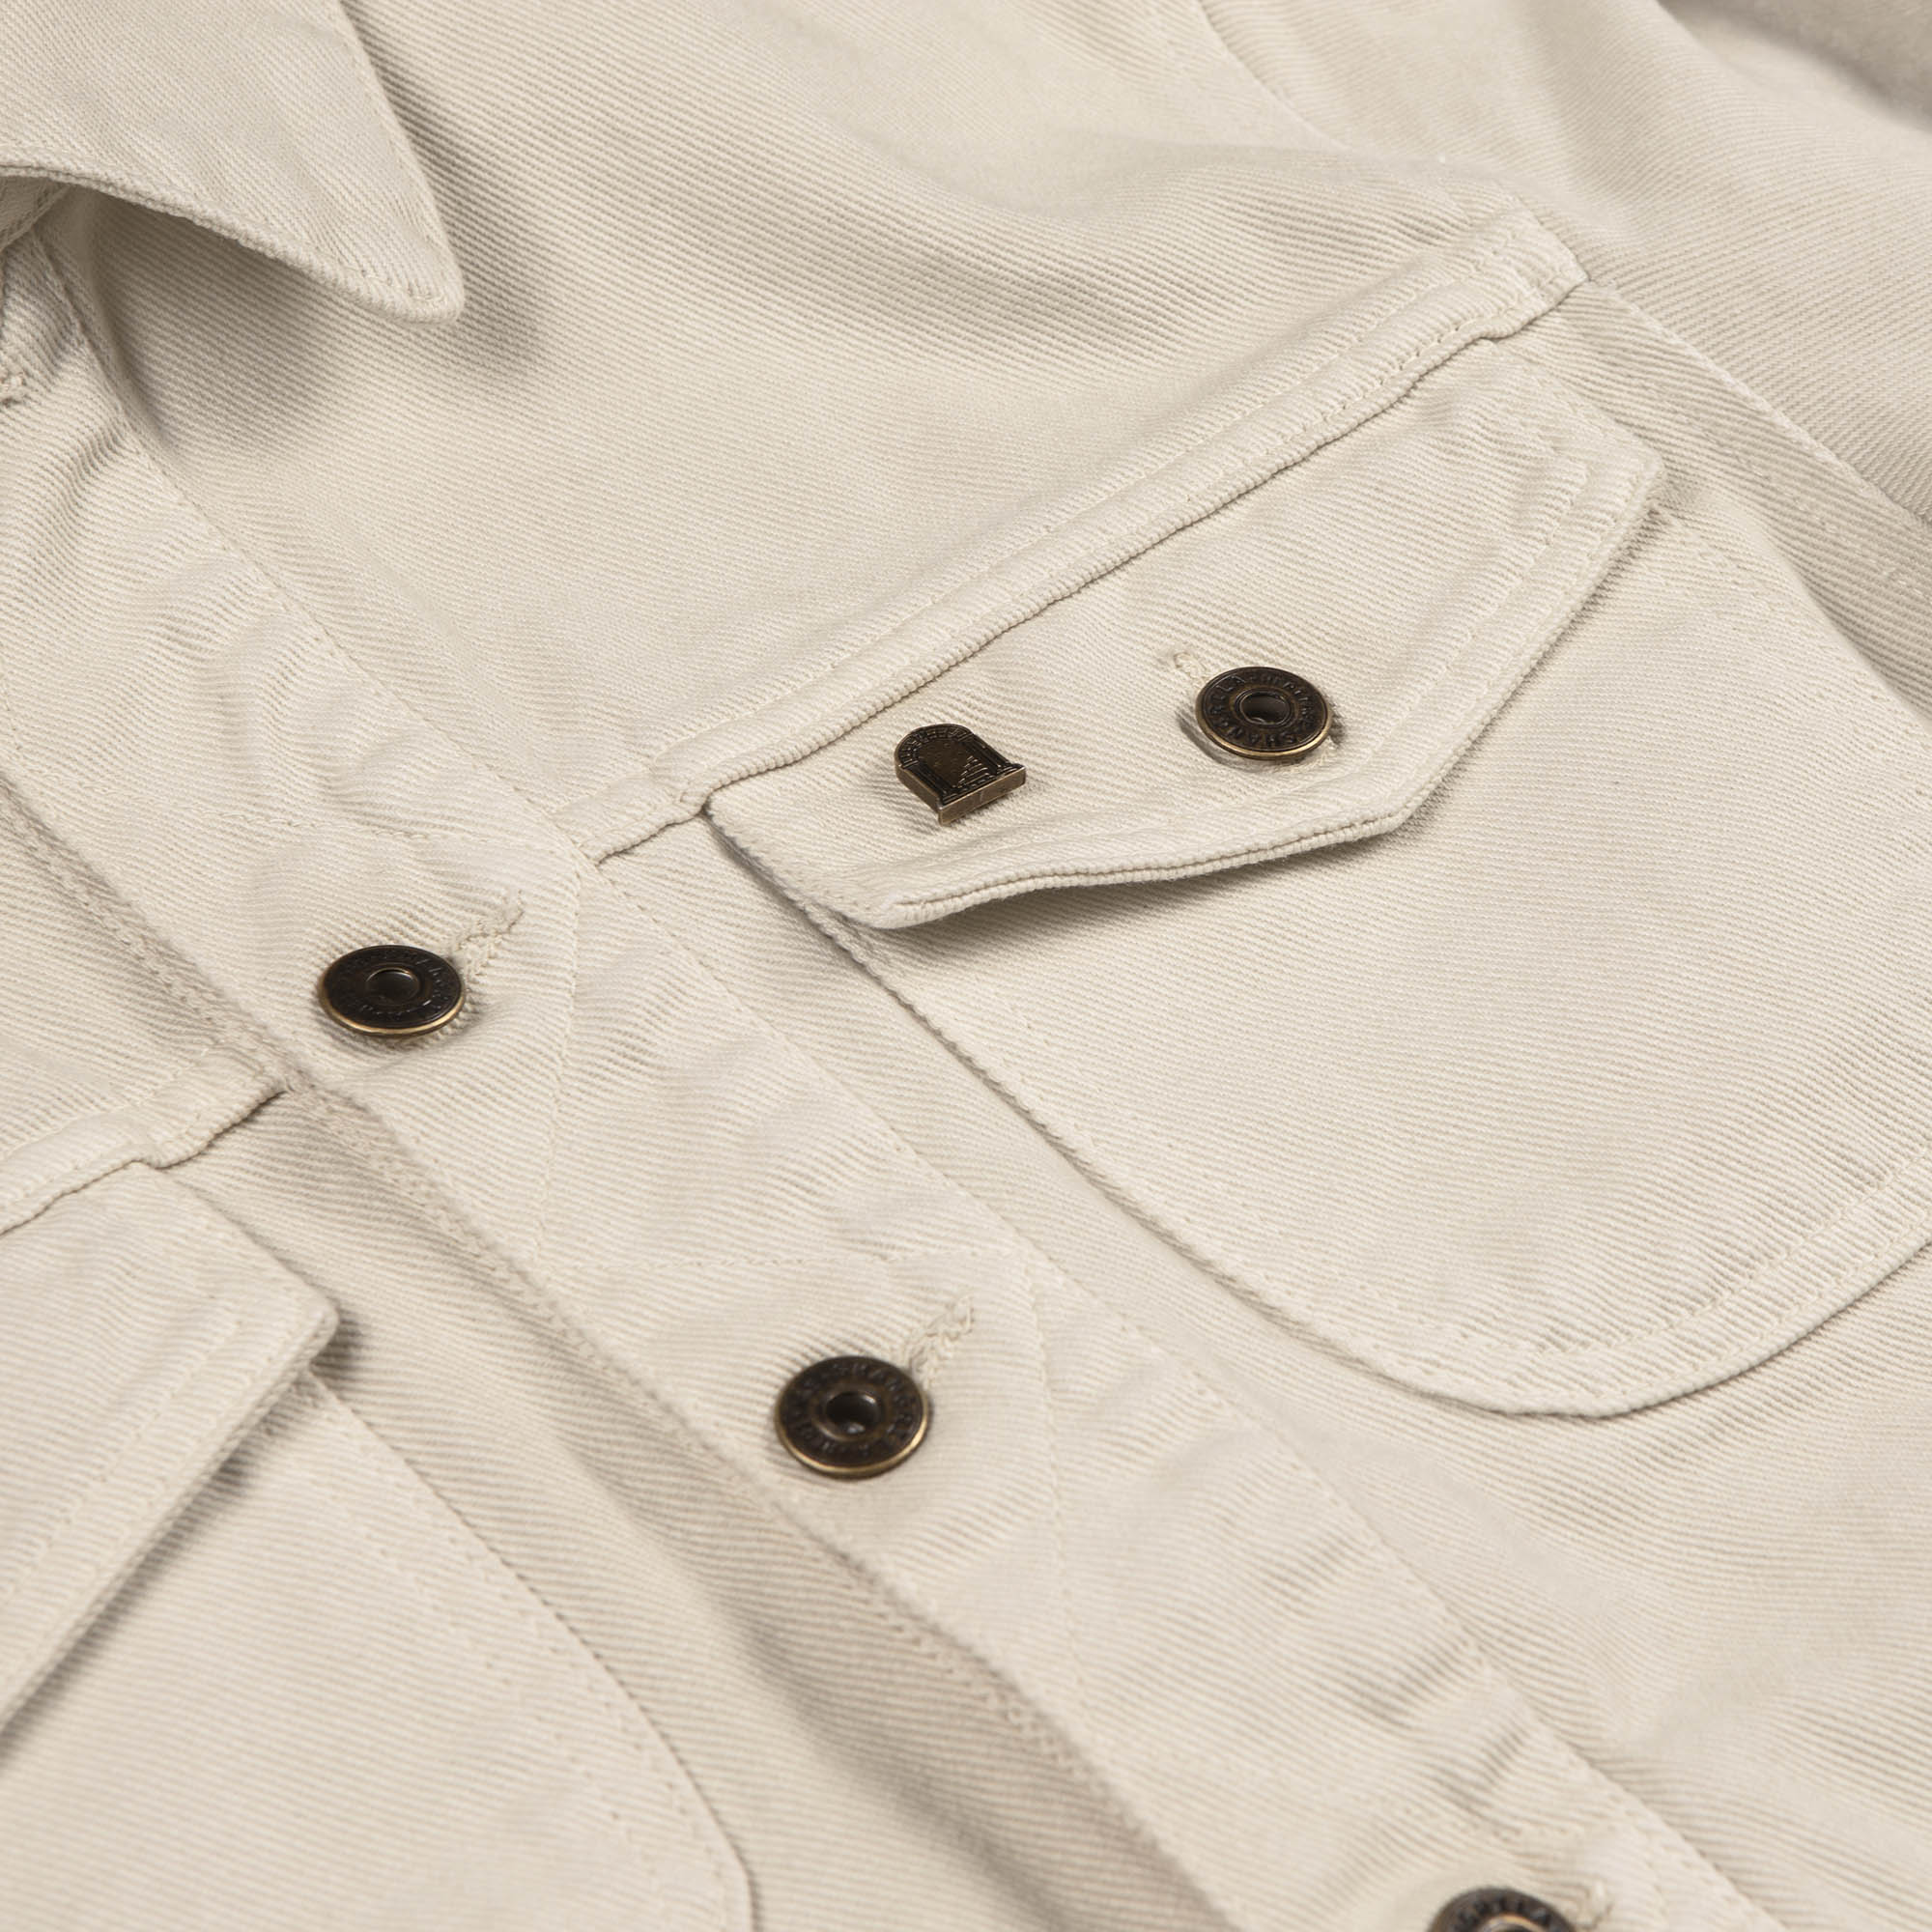 shangri-la-heritage-new-single-rider-ivory-canvas-jacket-still-life-chest-pocket